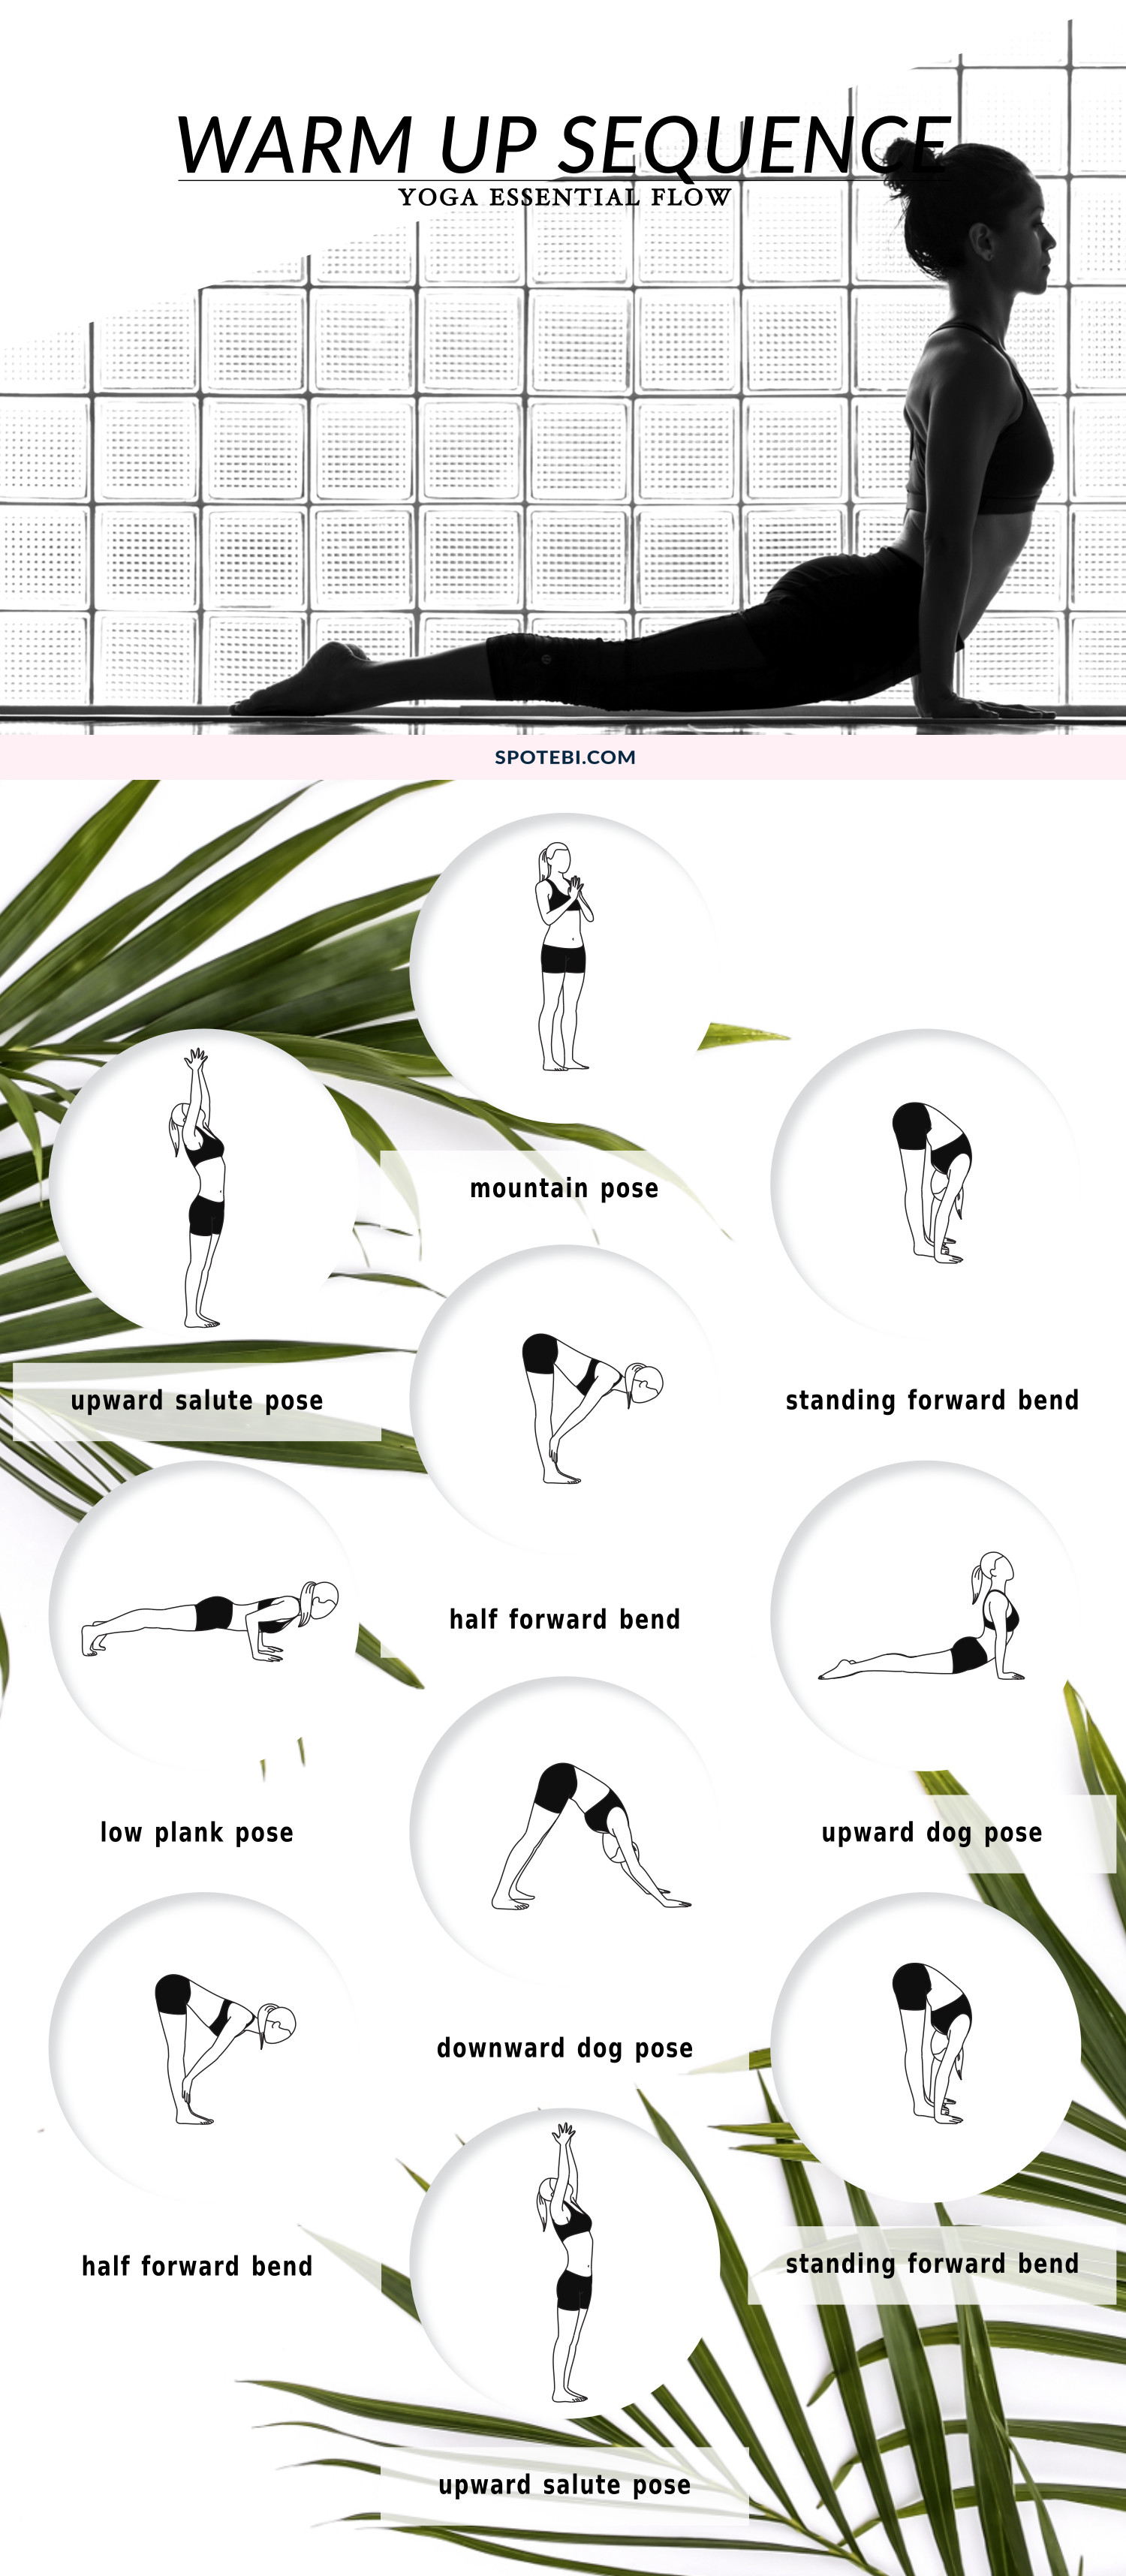 Awaken the body and prepare for a workout with this yoga warm up flow. Repeat this flow for 5 rounds, give yourself time to ease into the asanas and, with each exhale, move deeper into the poses. https://www.spotebi.com/yoga-sequences/warm-up-flow/